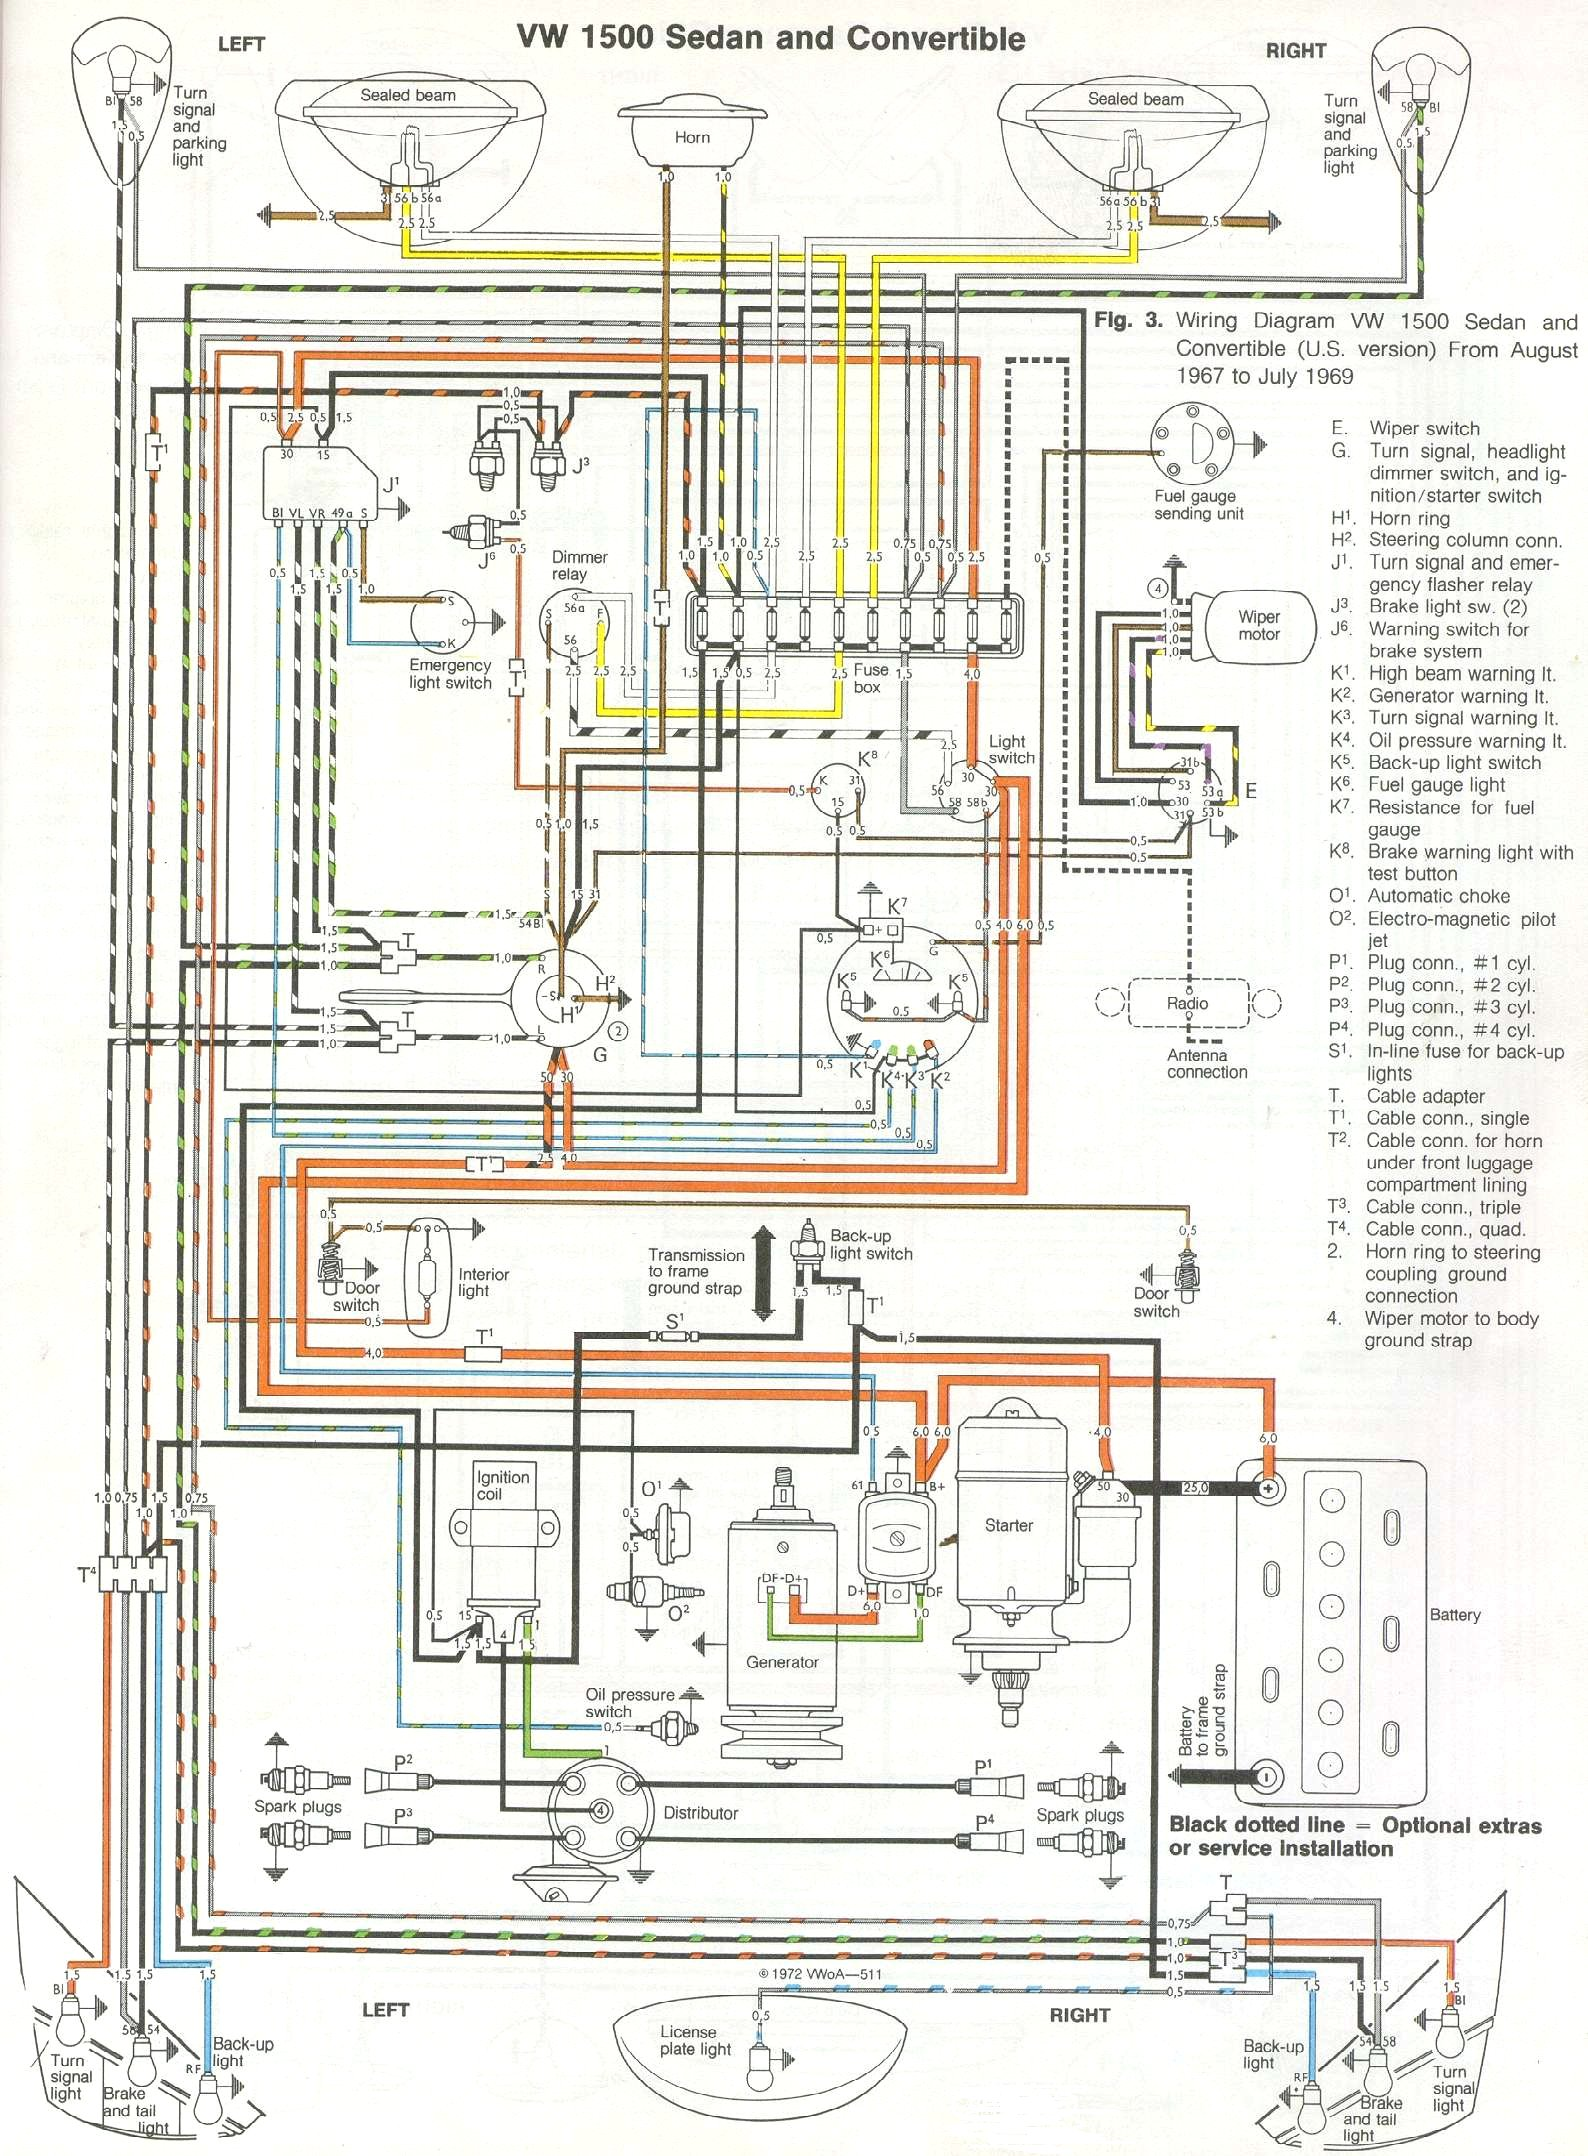 1969 71 beetle wiring diagram thegoldenbug com rh thegoldenbug com VW Wiring Harness Diagram VW Bug Wiring-Diagram